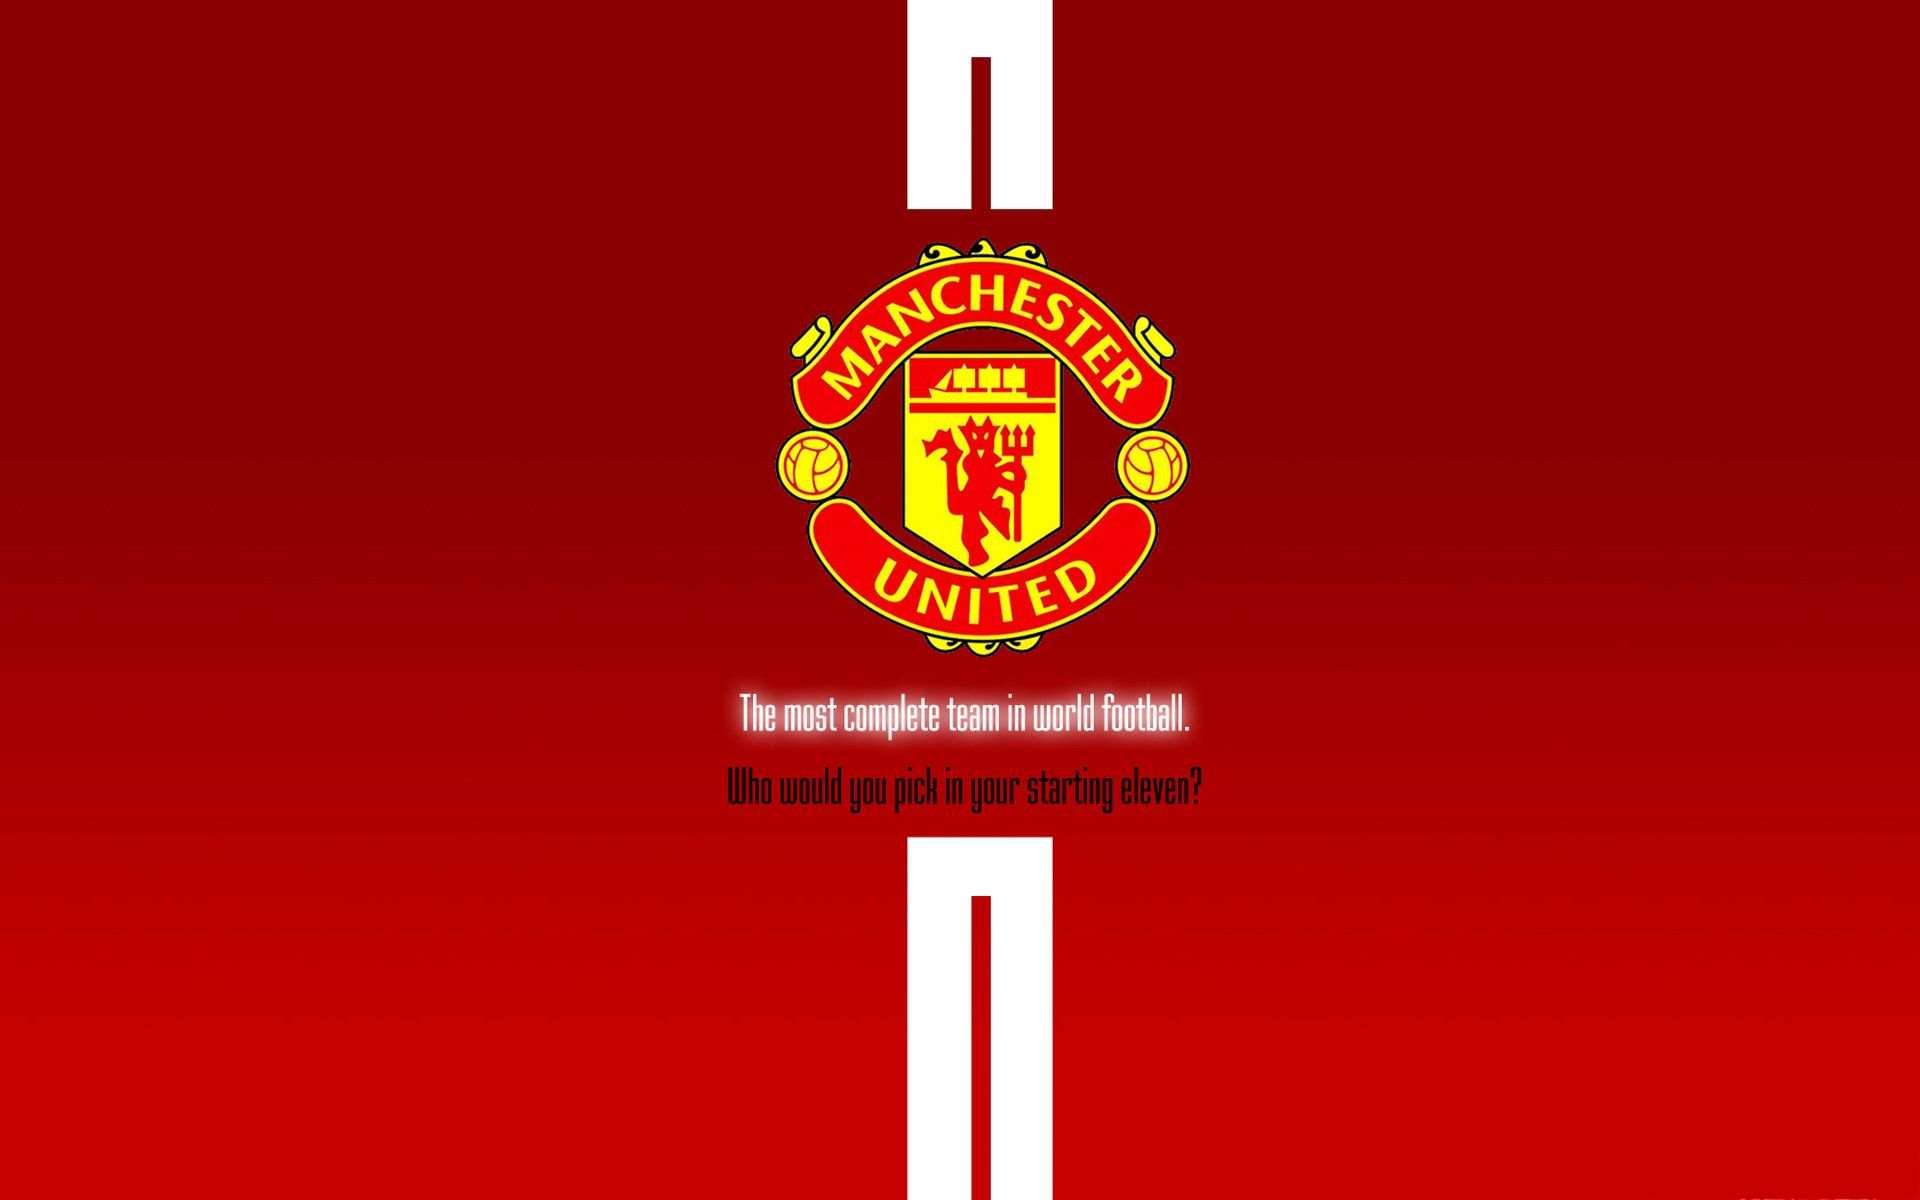 Manchester United Wallpaper For Phone